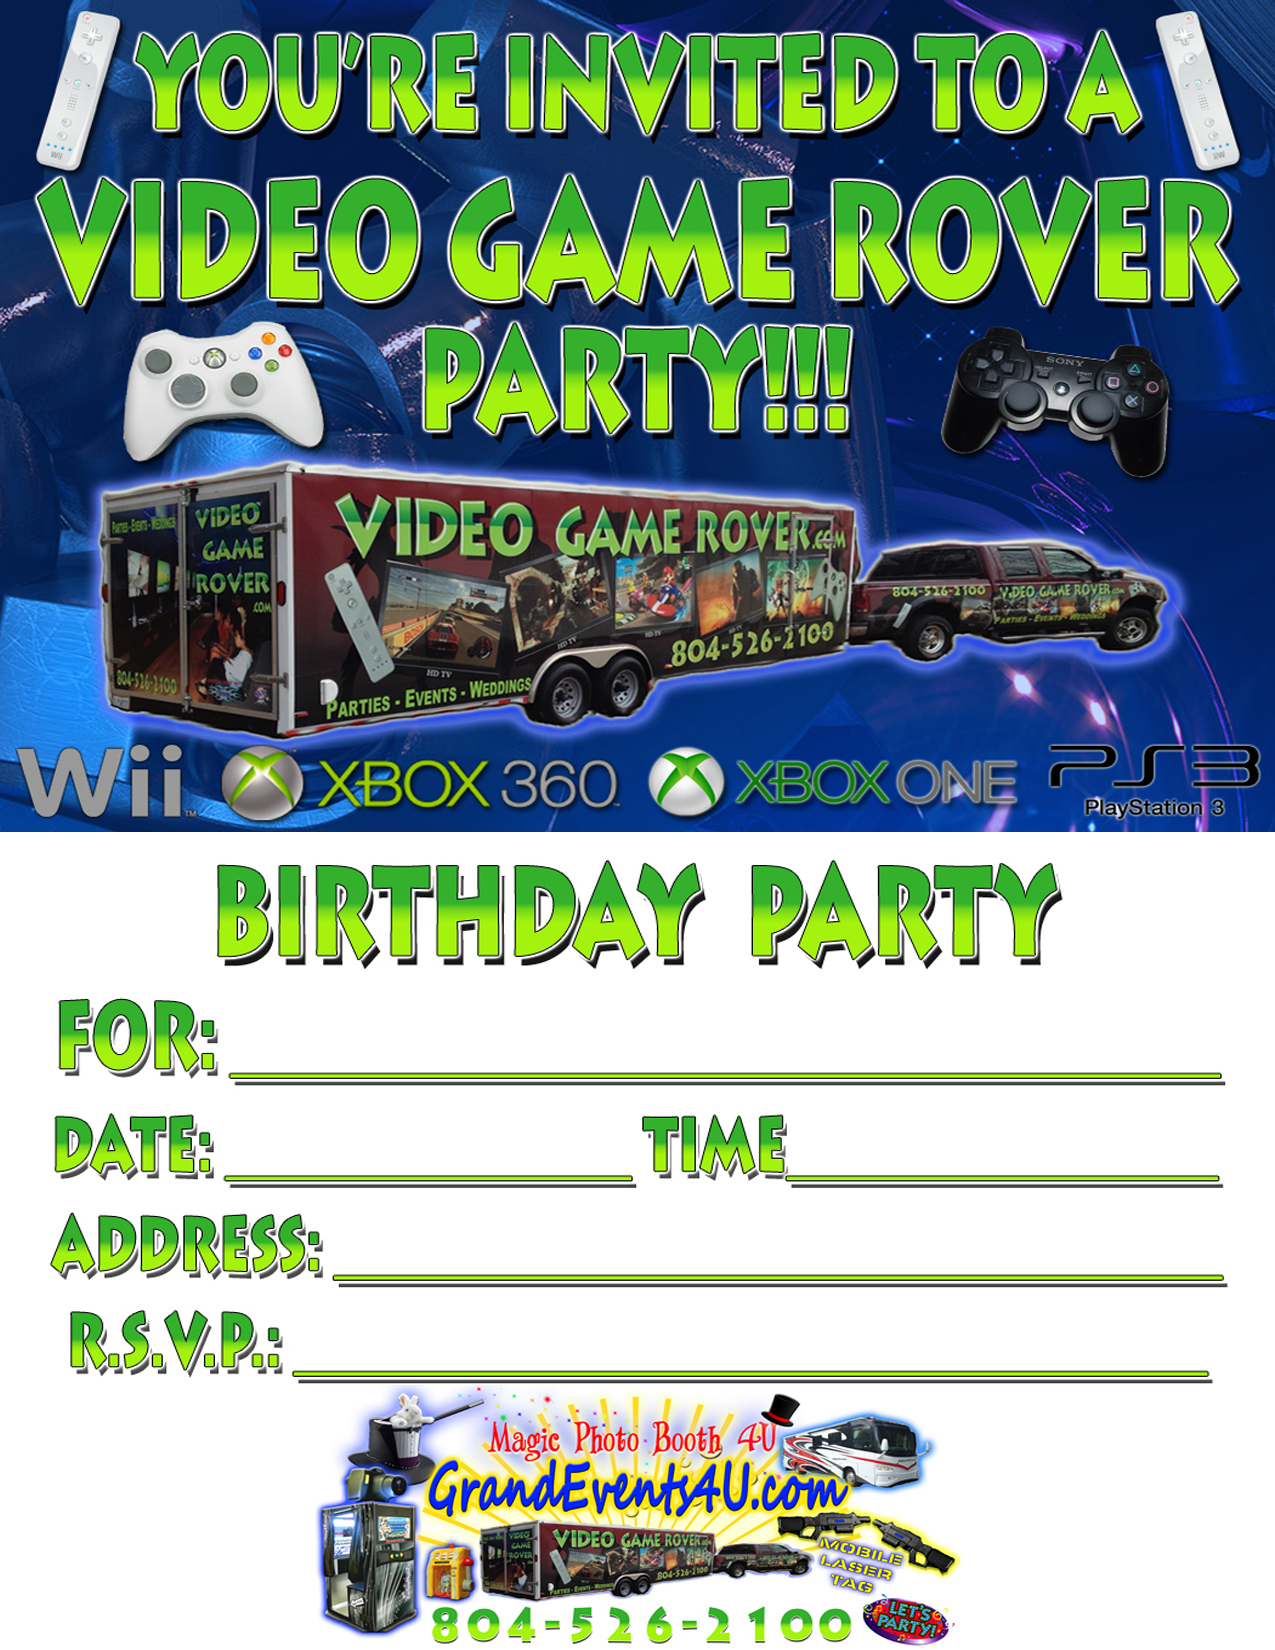 Video Game Party Invitations Video Game Party Invitations For - Free Printable Video Game Party Invitations